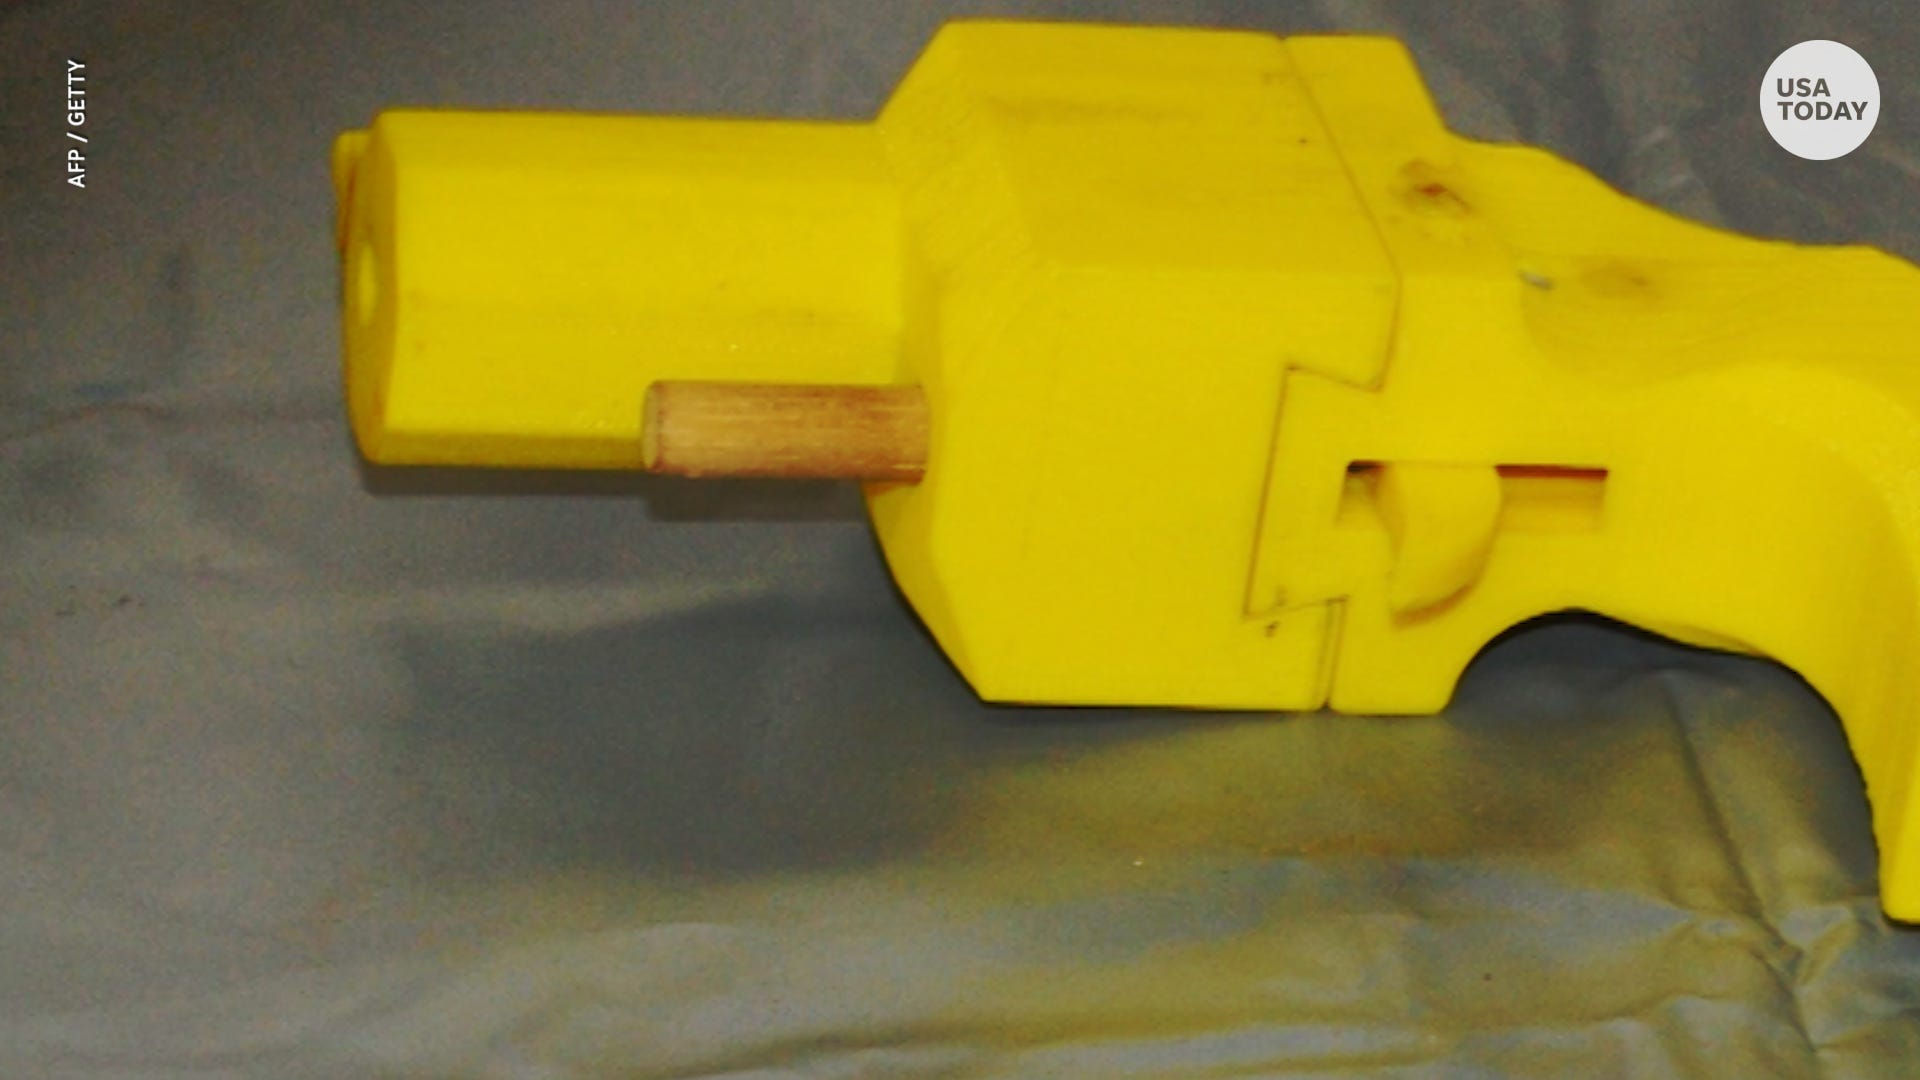 3D guns: How 3D printed gun parts are made, and how they're legal